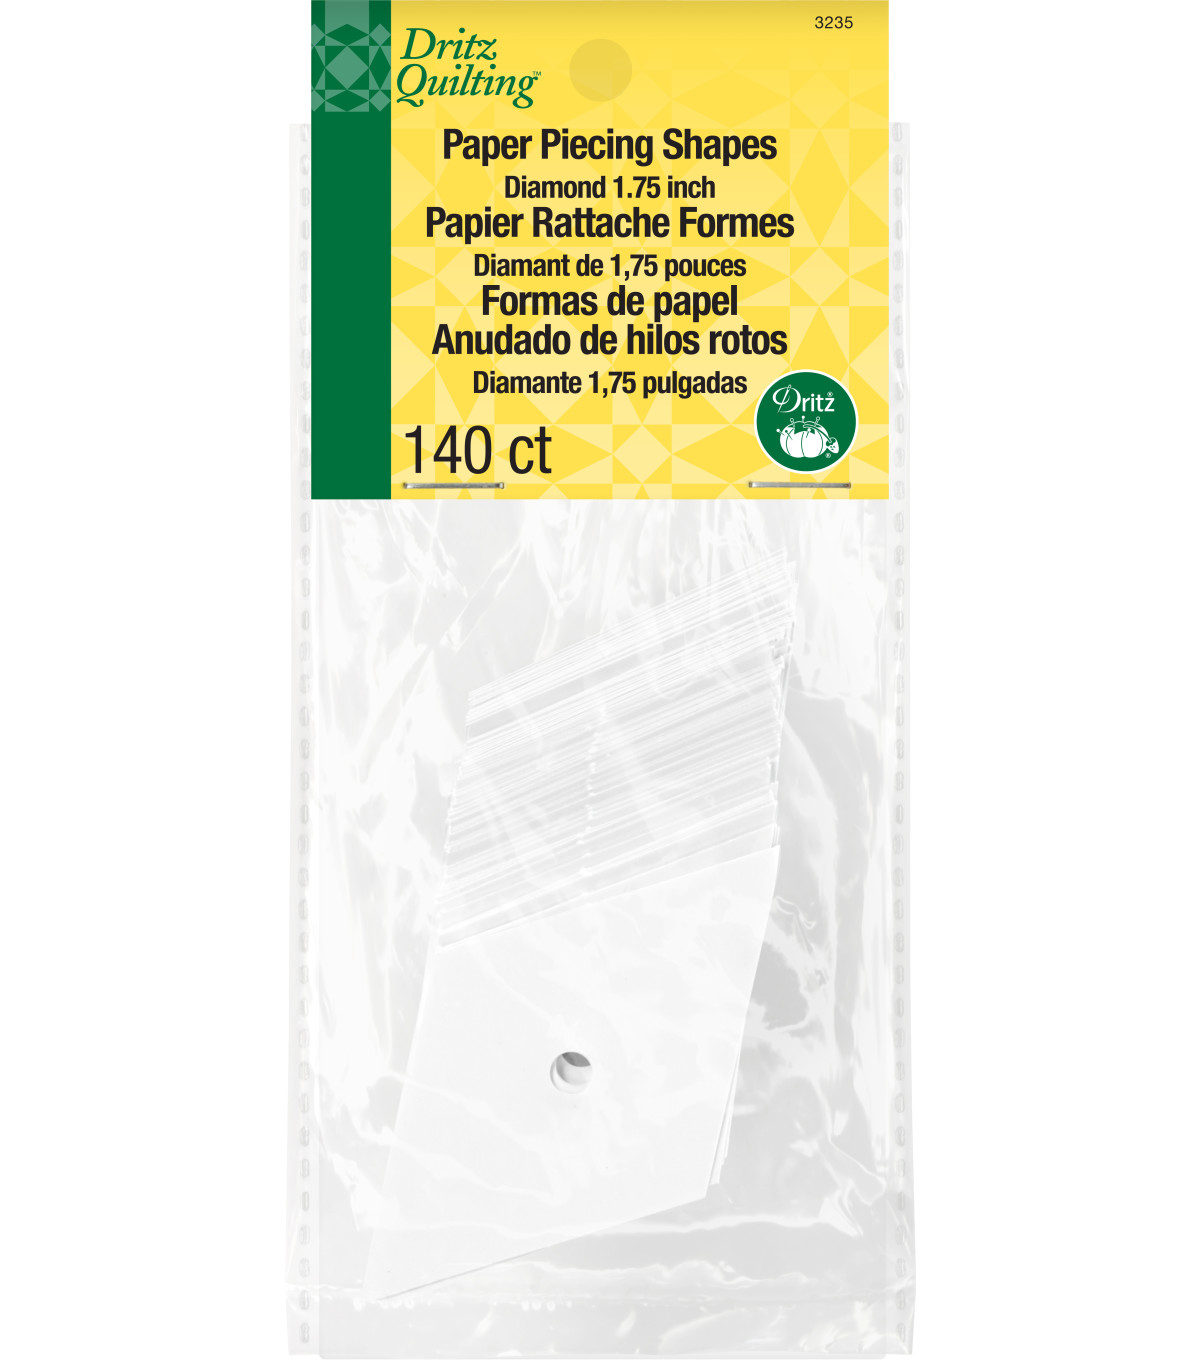 Dritz Quilting Paper Piecing 60 Degree Diamond 140 Pack 1.7\u0022